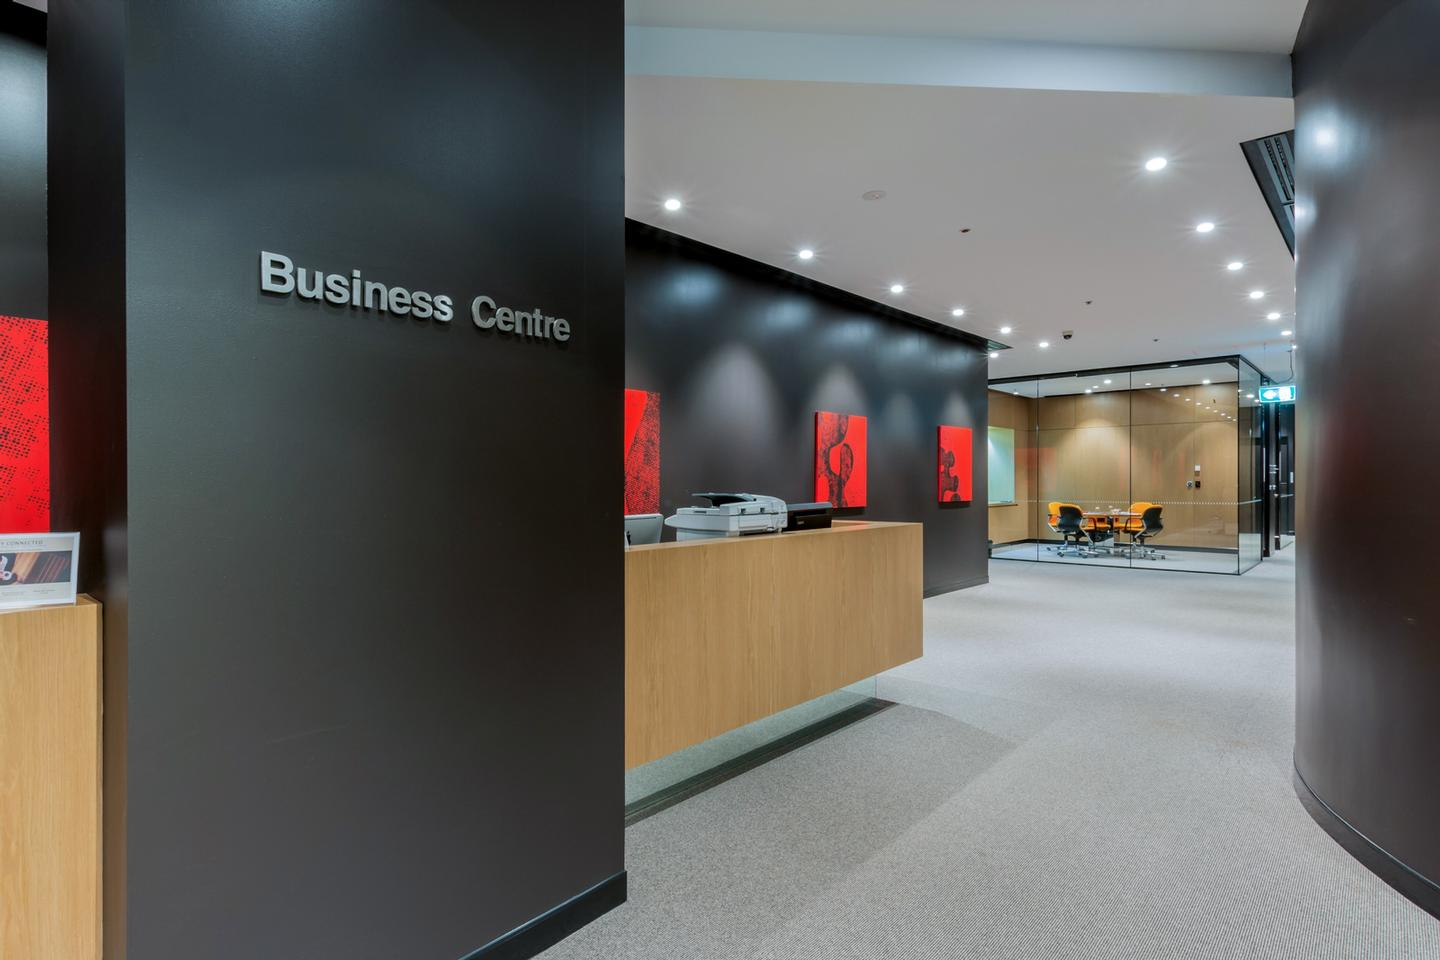 Business Centre -Level 6 14 of 31